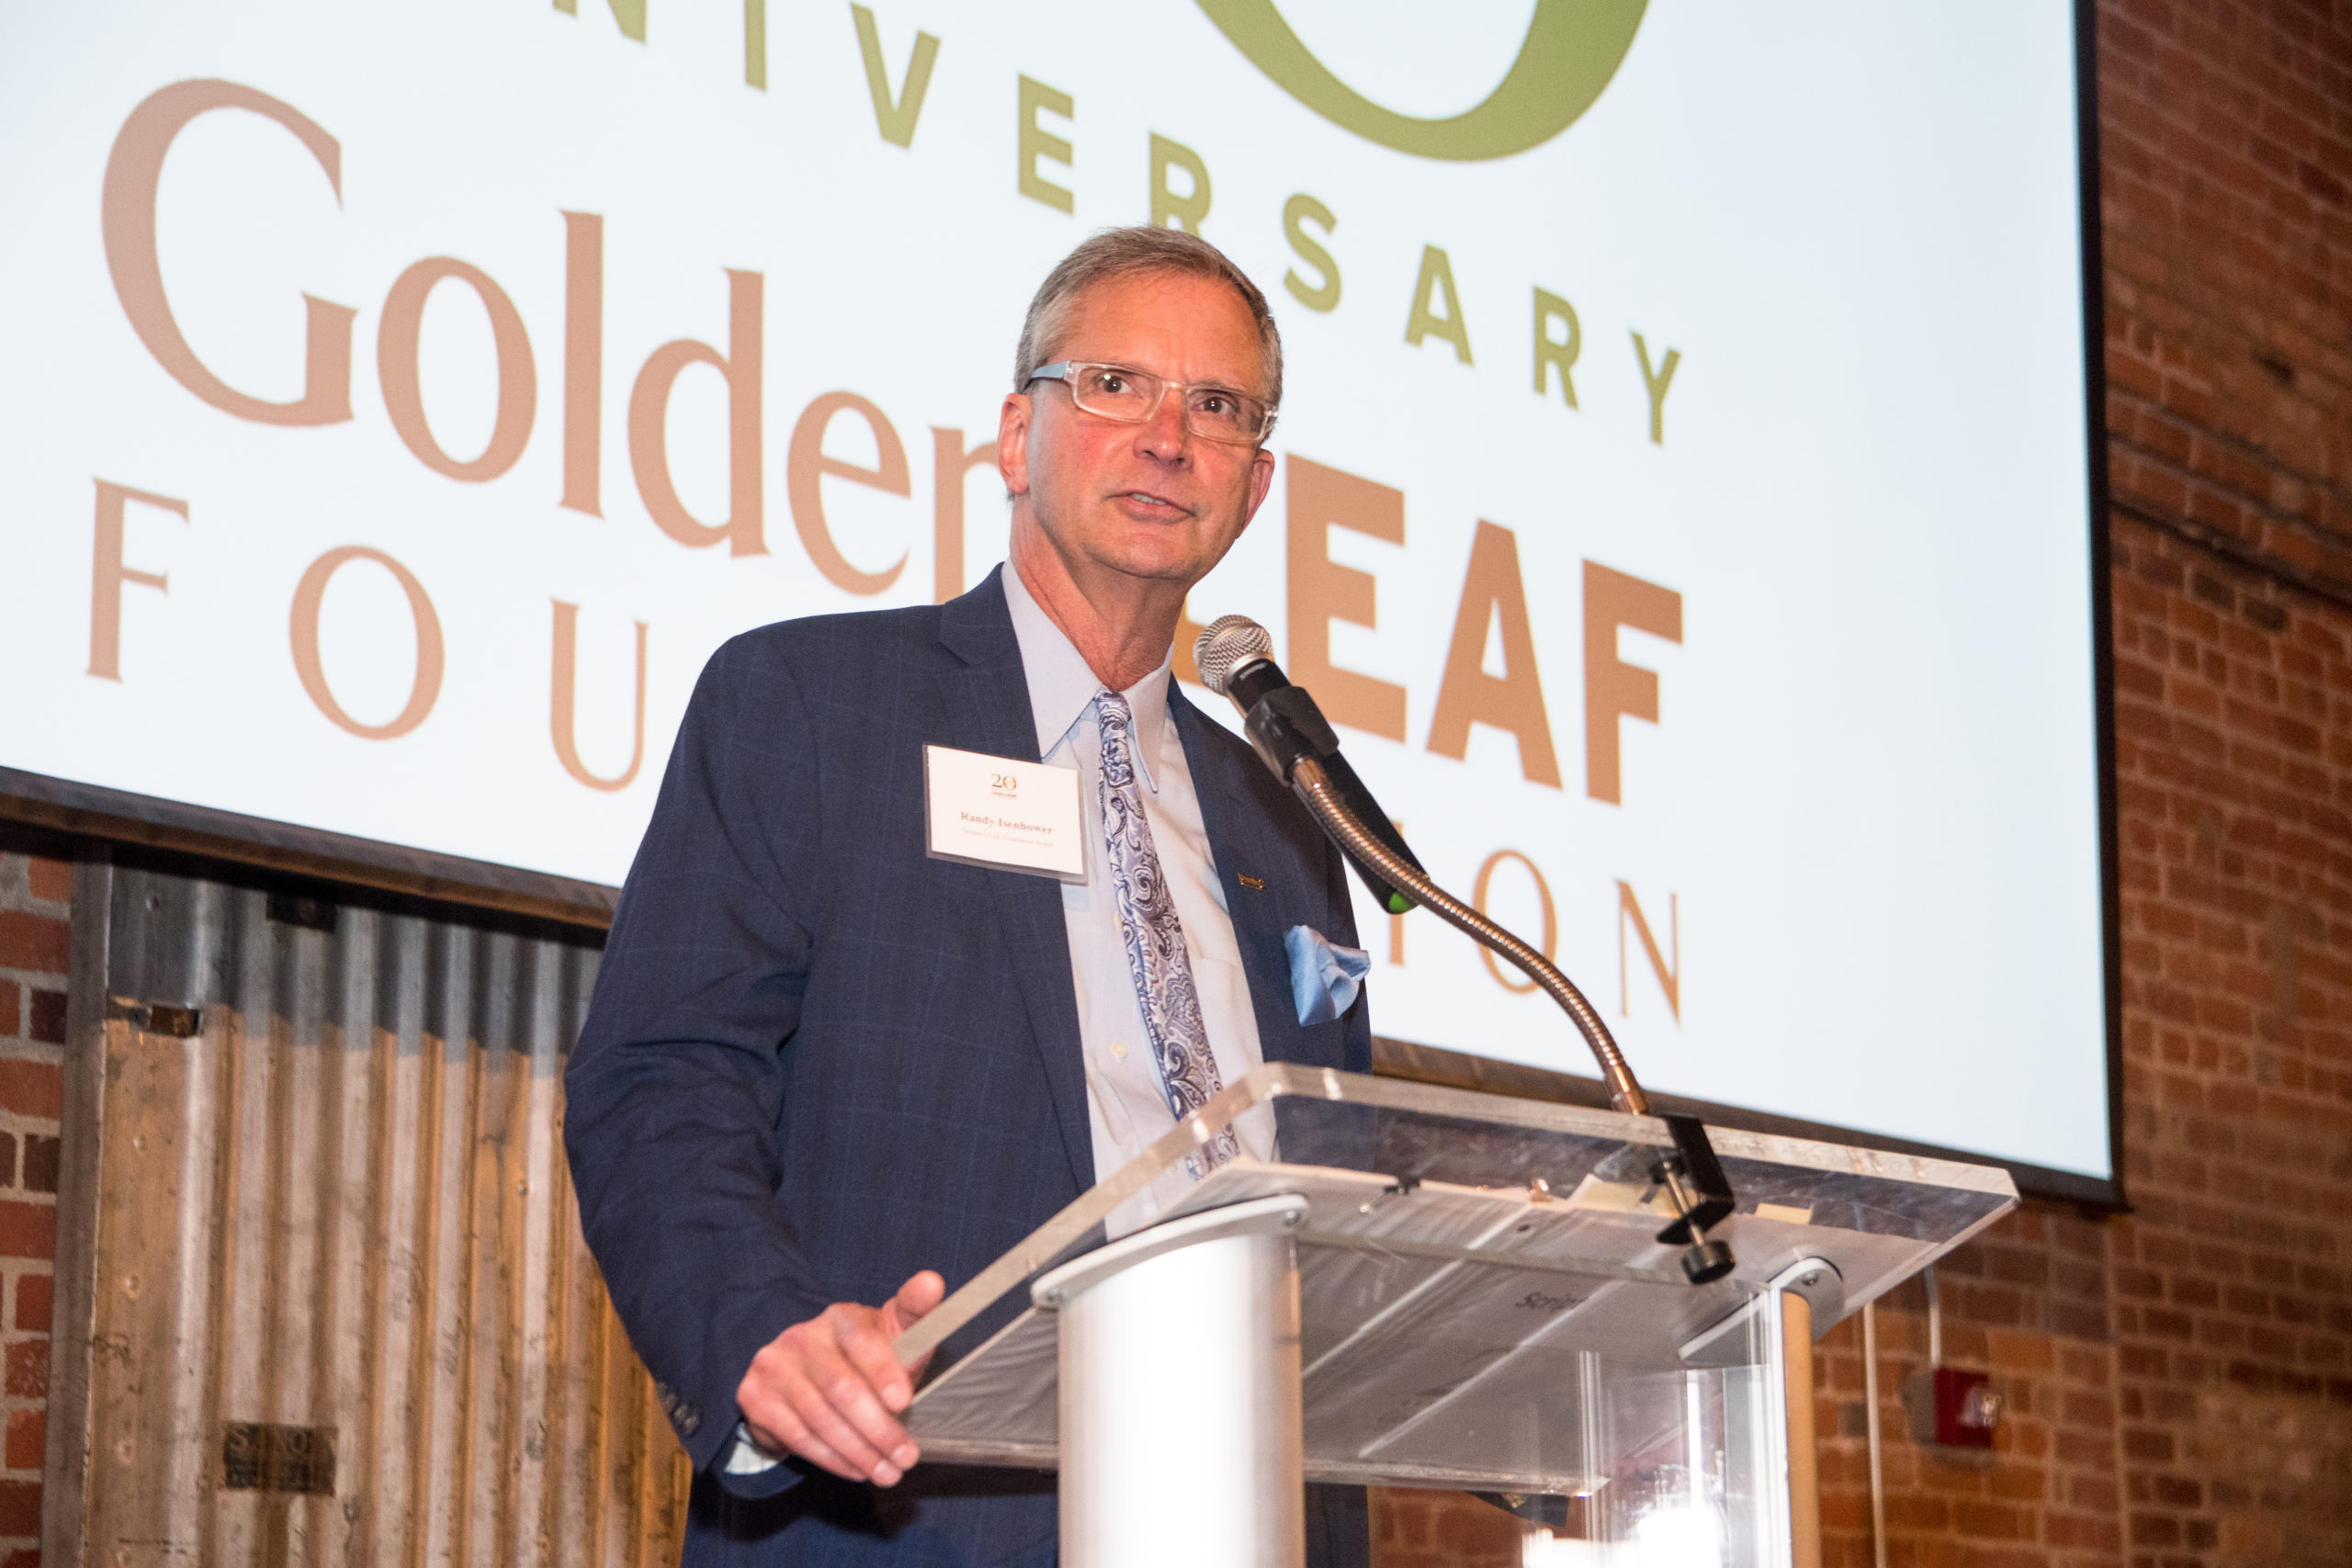 The Golden LEAF Foundation Celebrates 20 Years